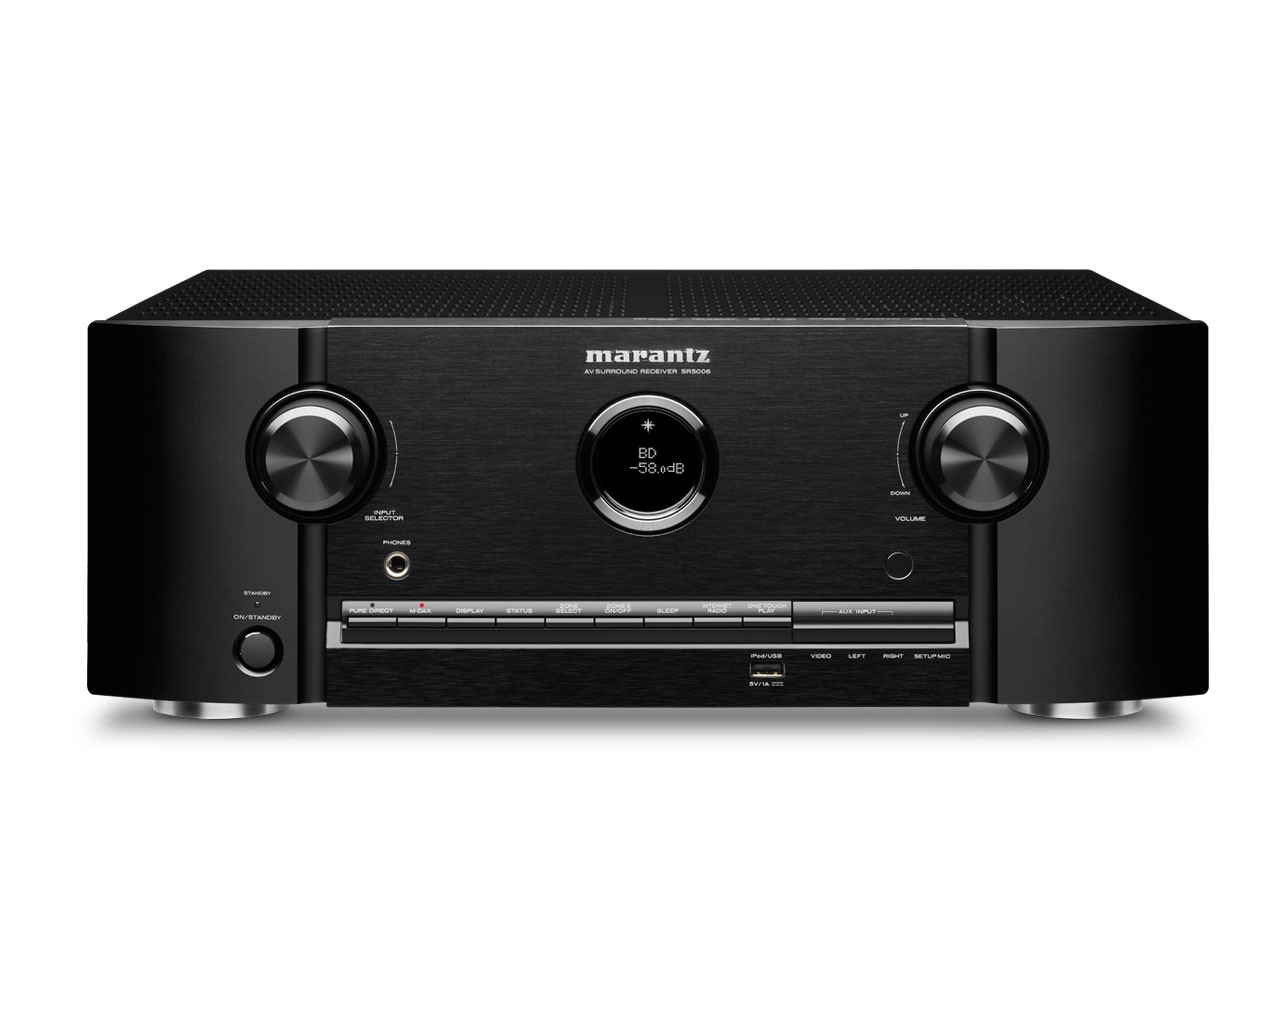 Marantz SR5006 7.1 Channel A/V Home Theater Receiver